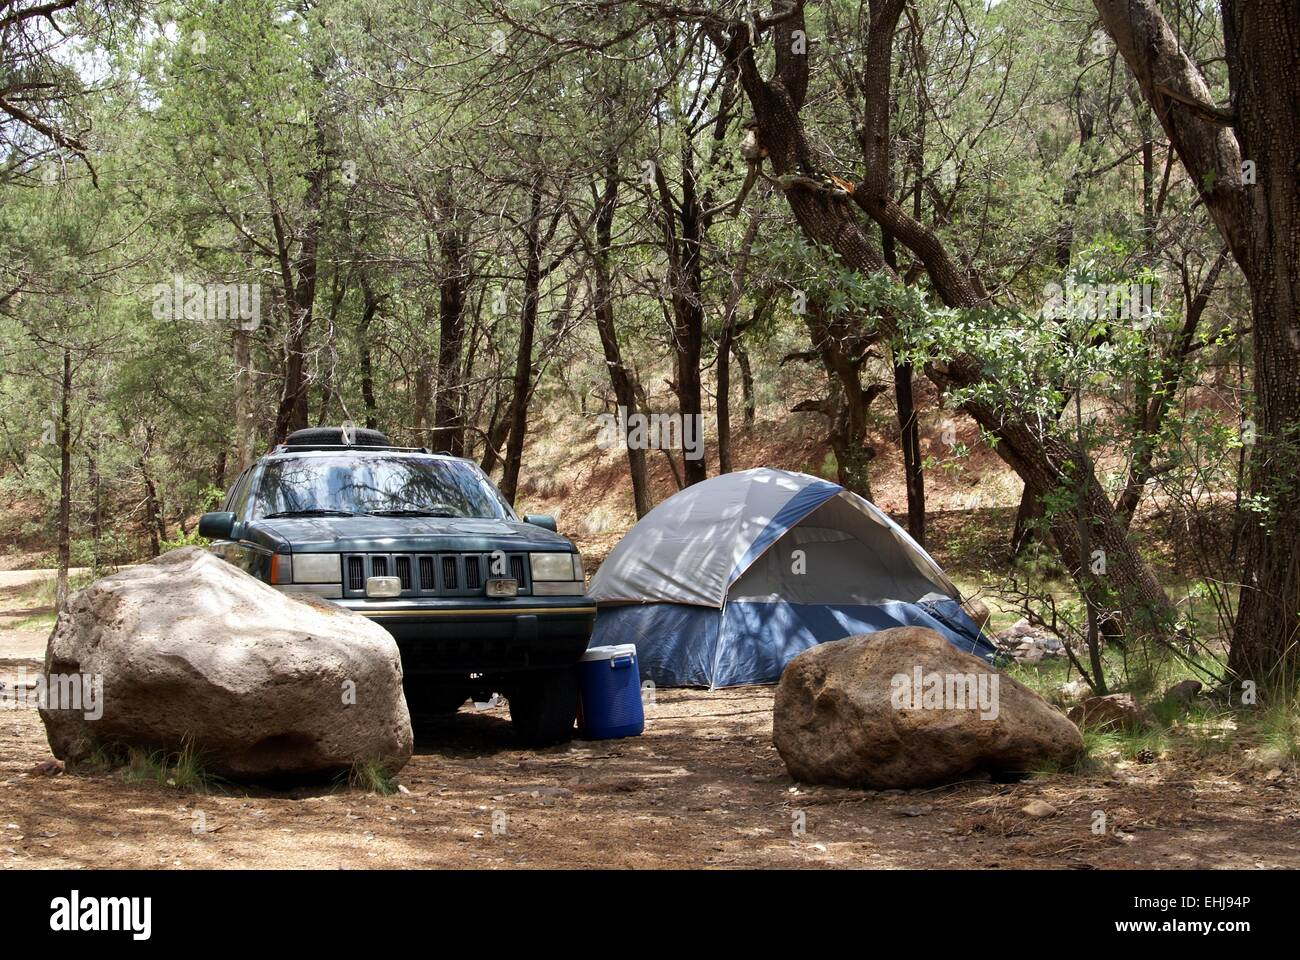 Primitive campground with tent and SUV in the forest - Stock Image